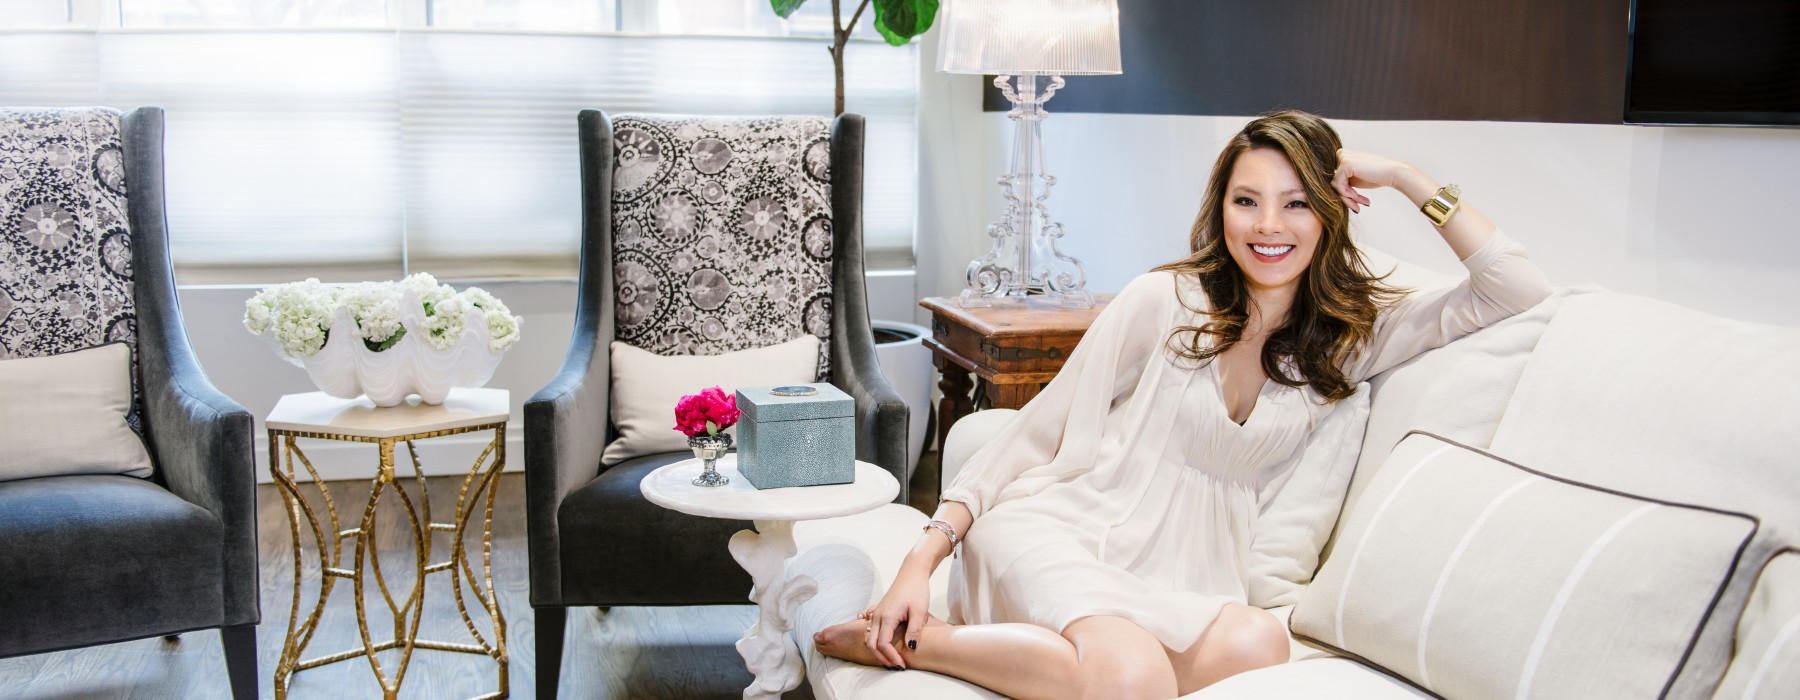 Get to Know Kathy Kuo, The Mom & Designer Behind Kathy Kuo Home